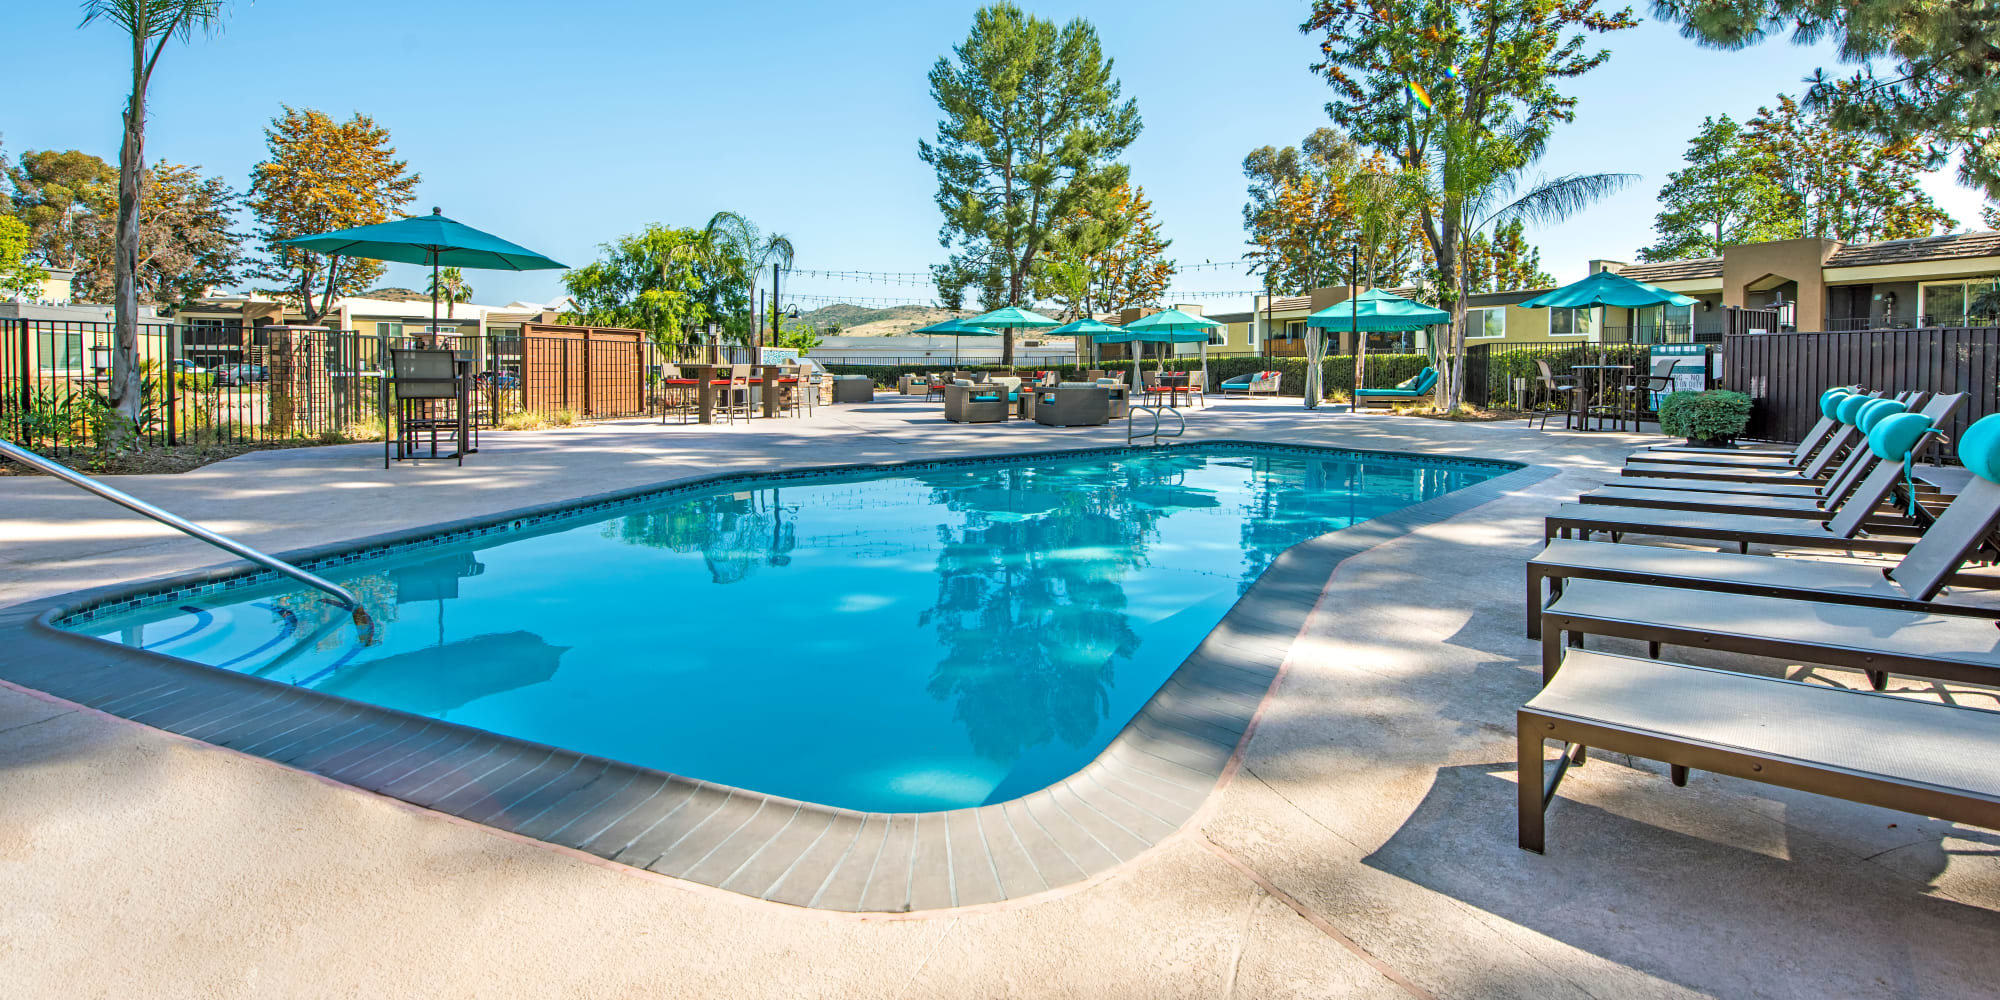 Apartments in Poway, California, at Sofi Poway